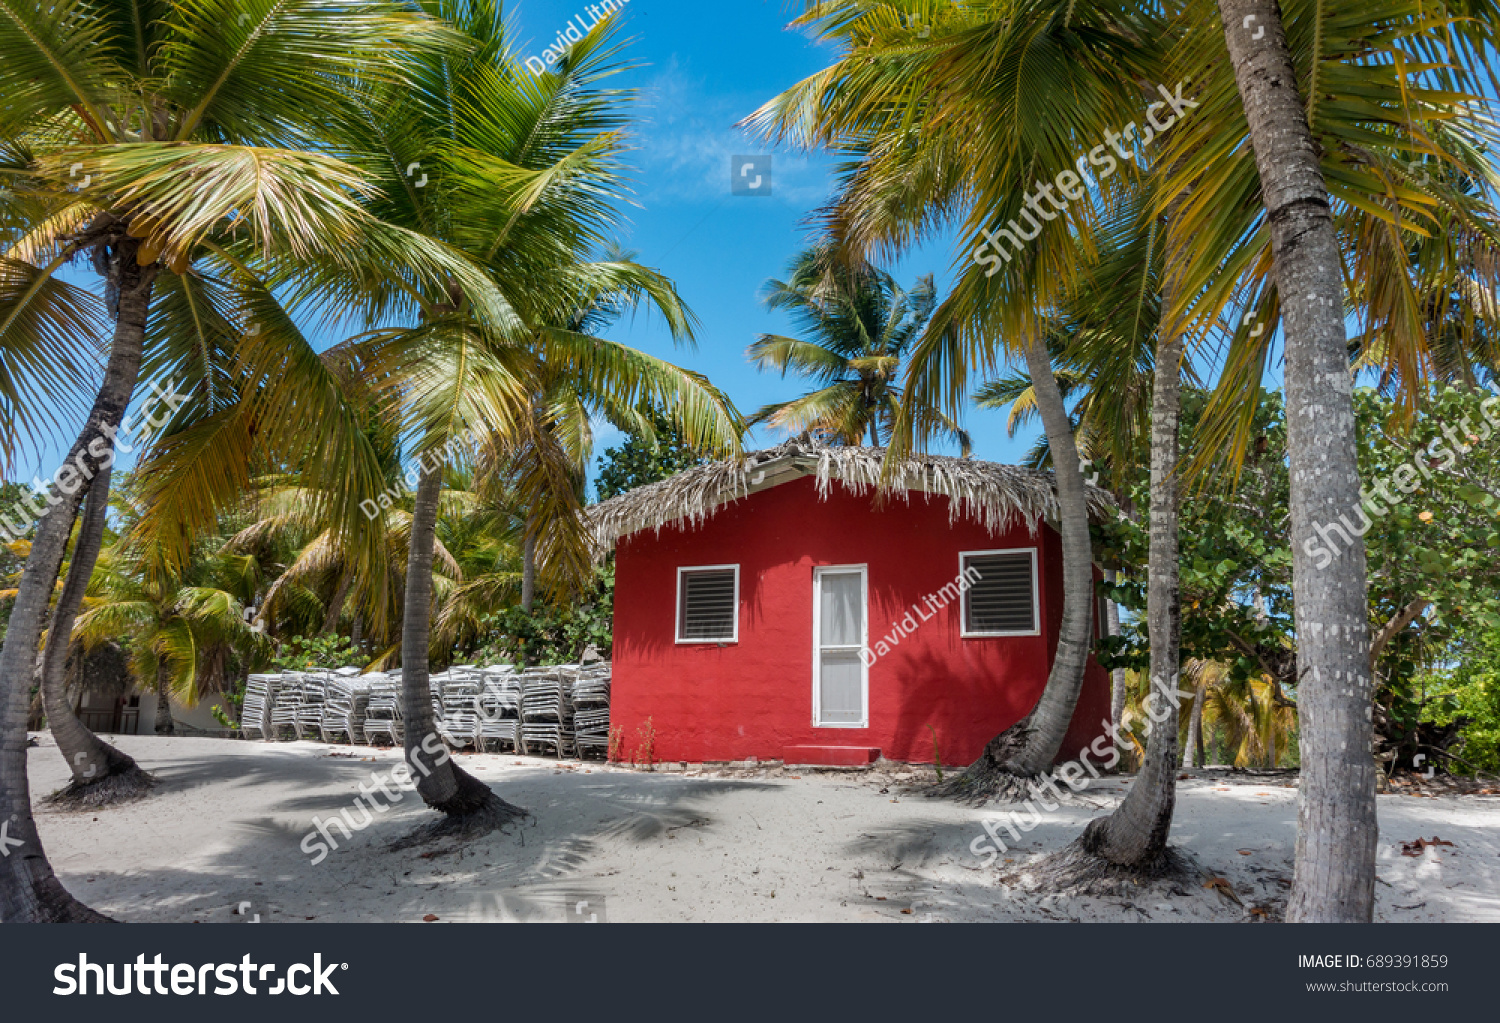 A colorful red traditional beach house on the tropical Caribbean island of Catalina, in the Dominican Republic.  Visited during snorkel excursion for the all inclusive resort Club Med